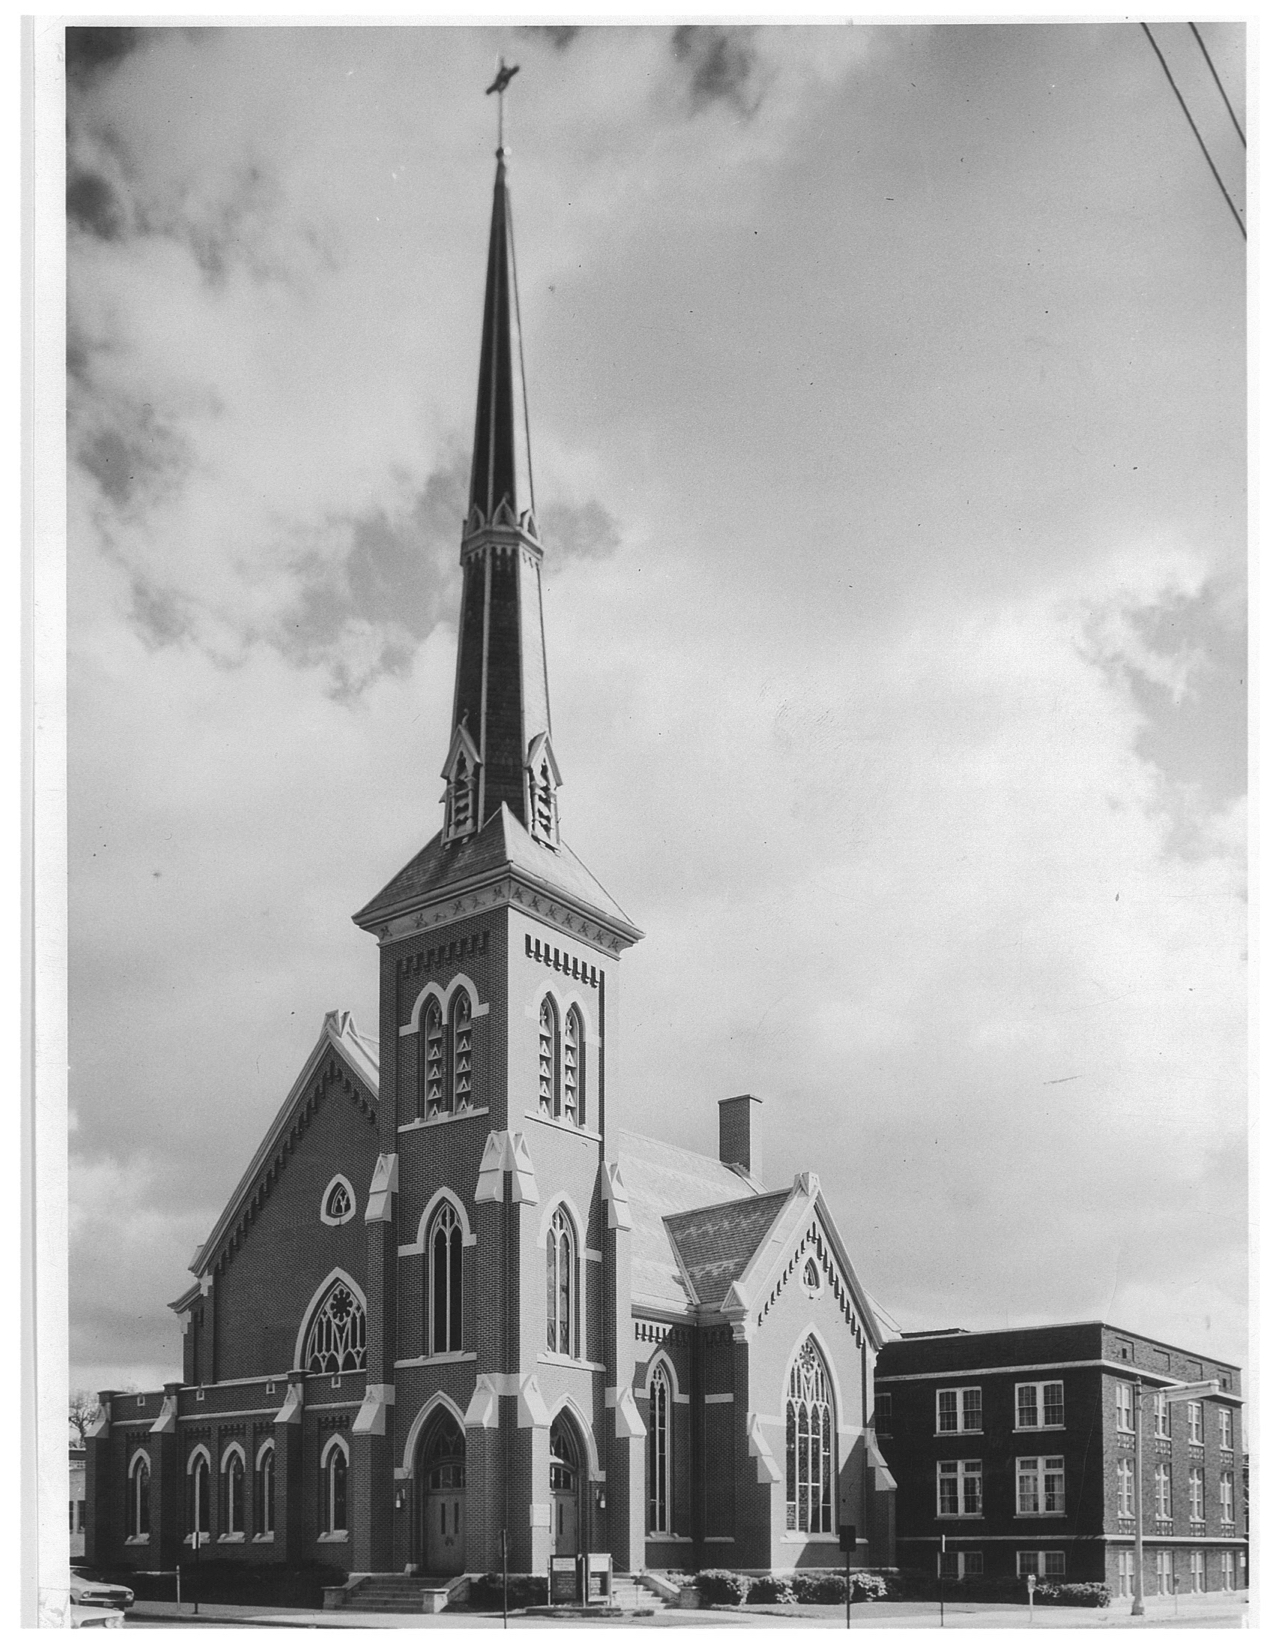 Old black and white photo of Westminster church exterior